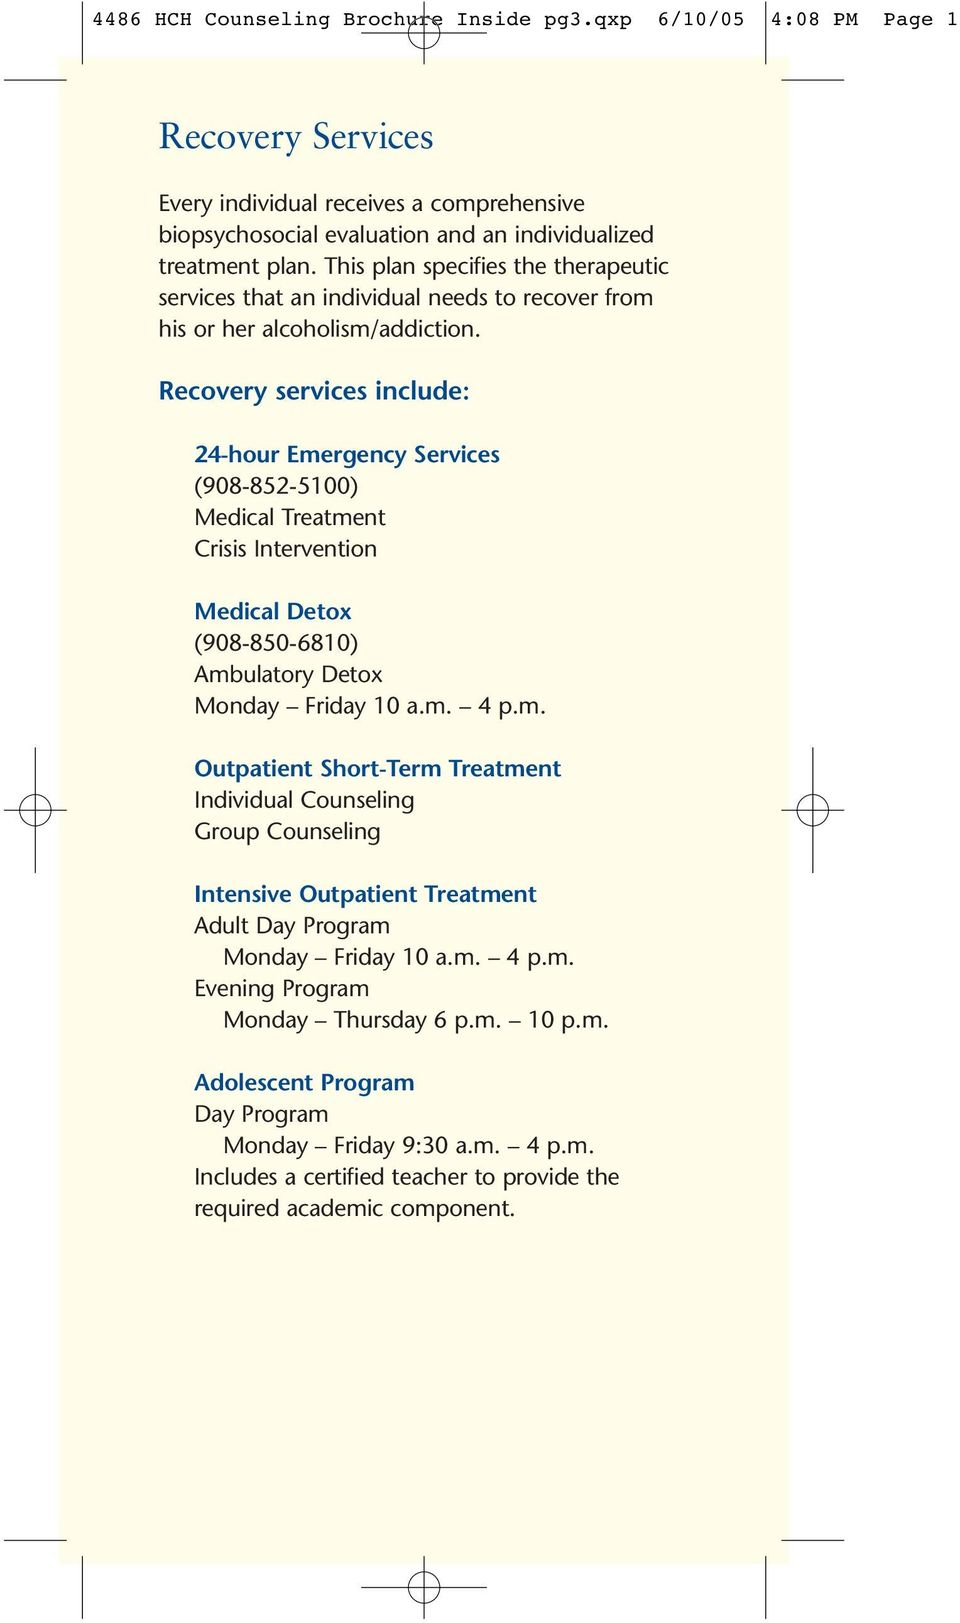 Recovery services include: 24-hour Emergency Services (908-852-5100) Medical Treatment Crisis Intervention Medical Detox (908-850-6810) Ambulatory Detox Monday Friday 10 a.m. 4 p.m. Outpatient Short-Term Treatment Individual Counseling Group Counseling Intensive Outpatient Treatment Adult Day Program Monday Friday 10 a.